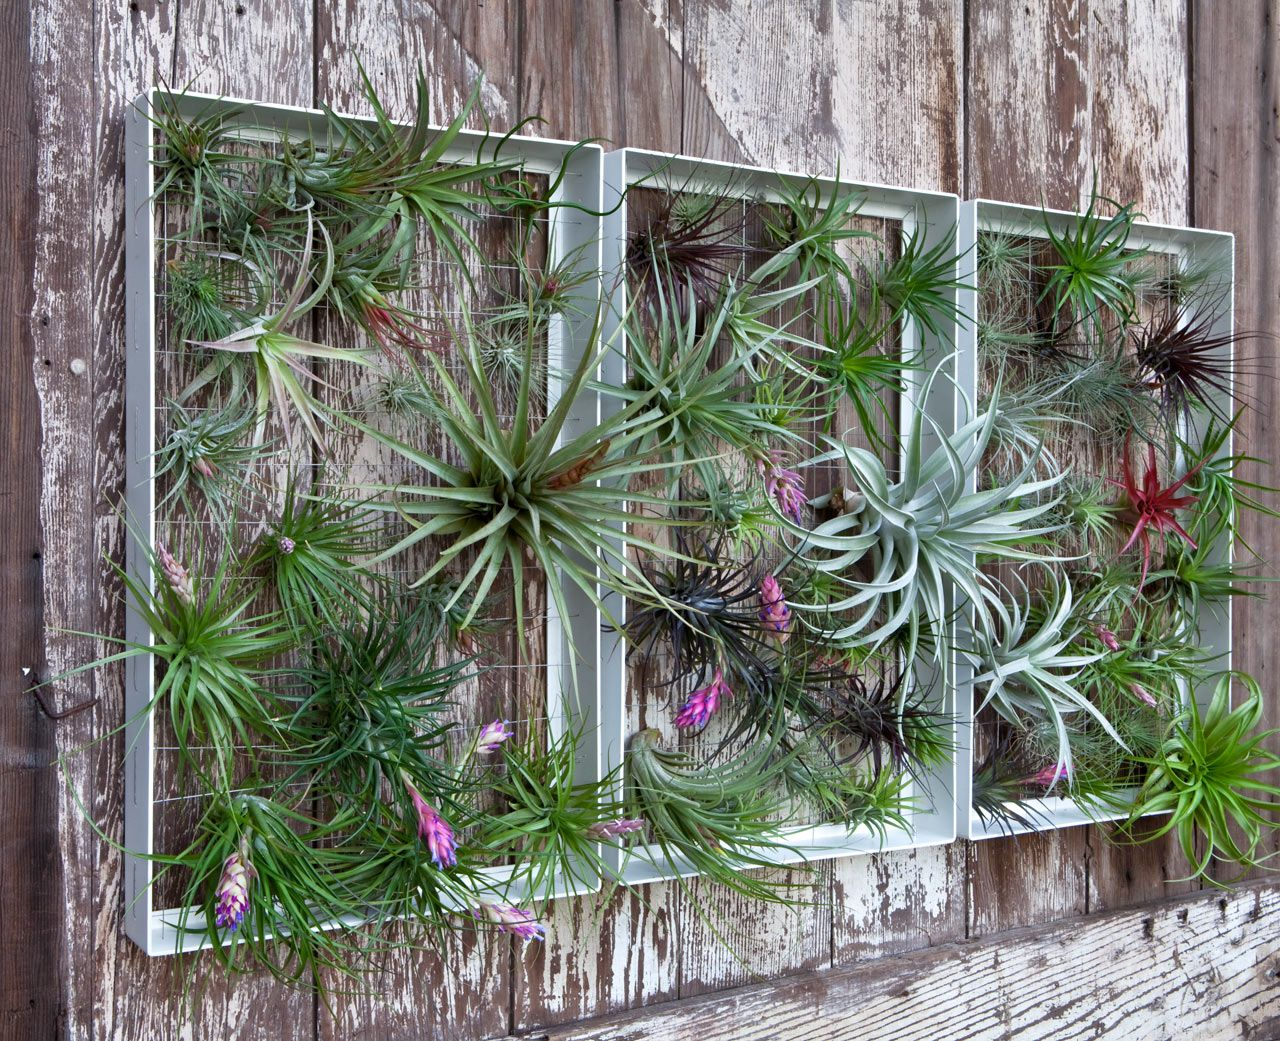 Rustic outdoor display focal point in the garden of air plants! outdoor-wall -